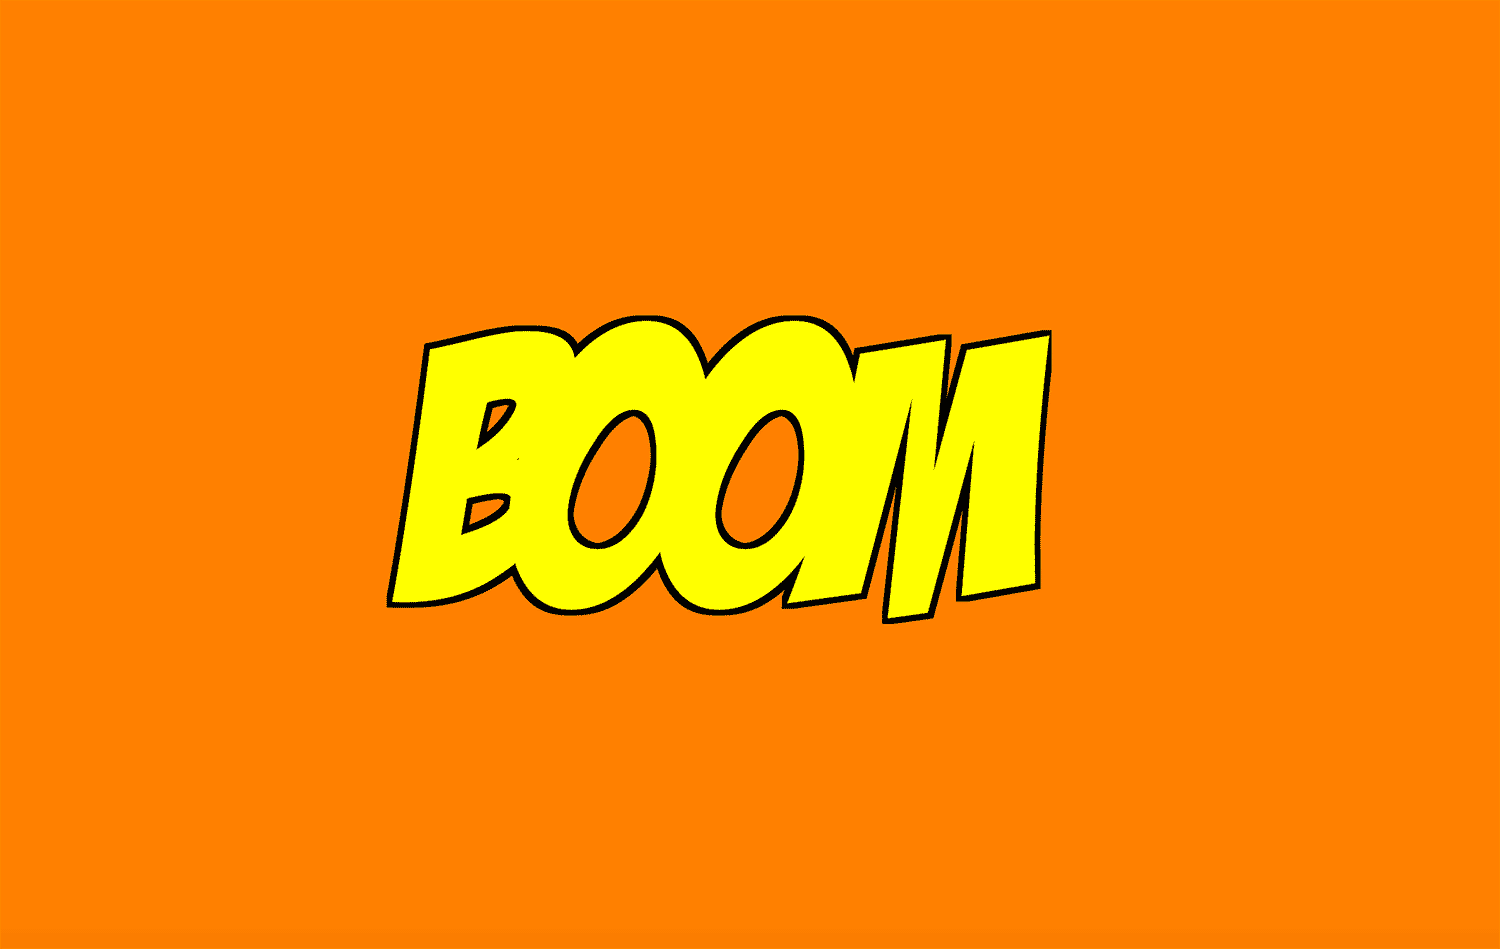 The New Code Boom Wham Pow Comic Book Fx Lettering